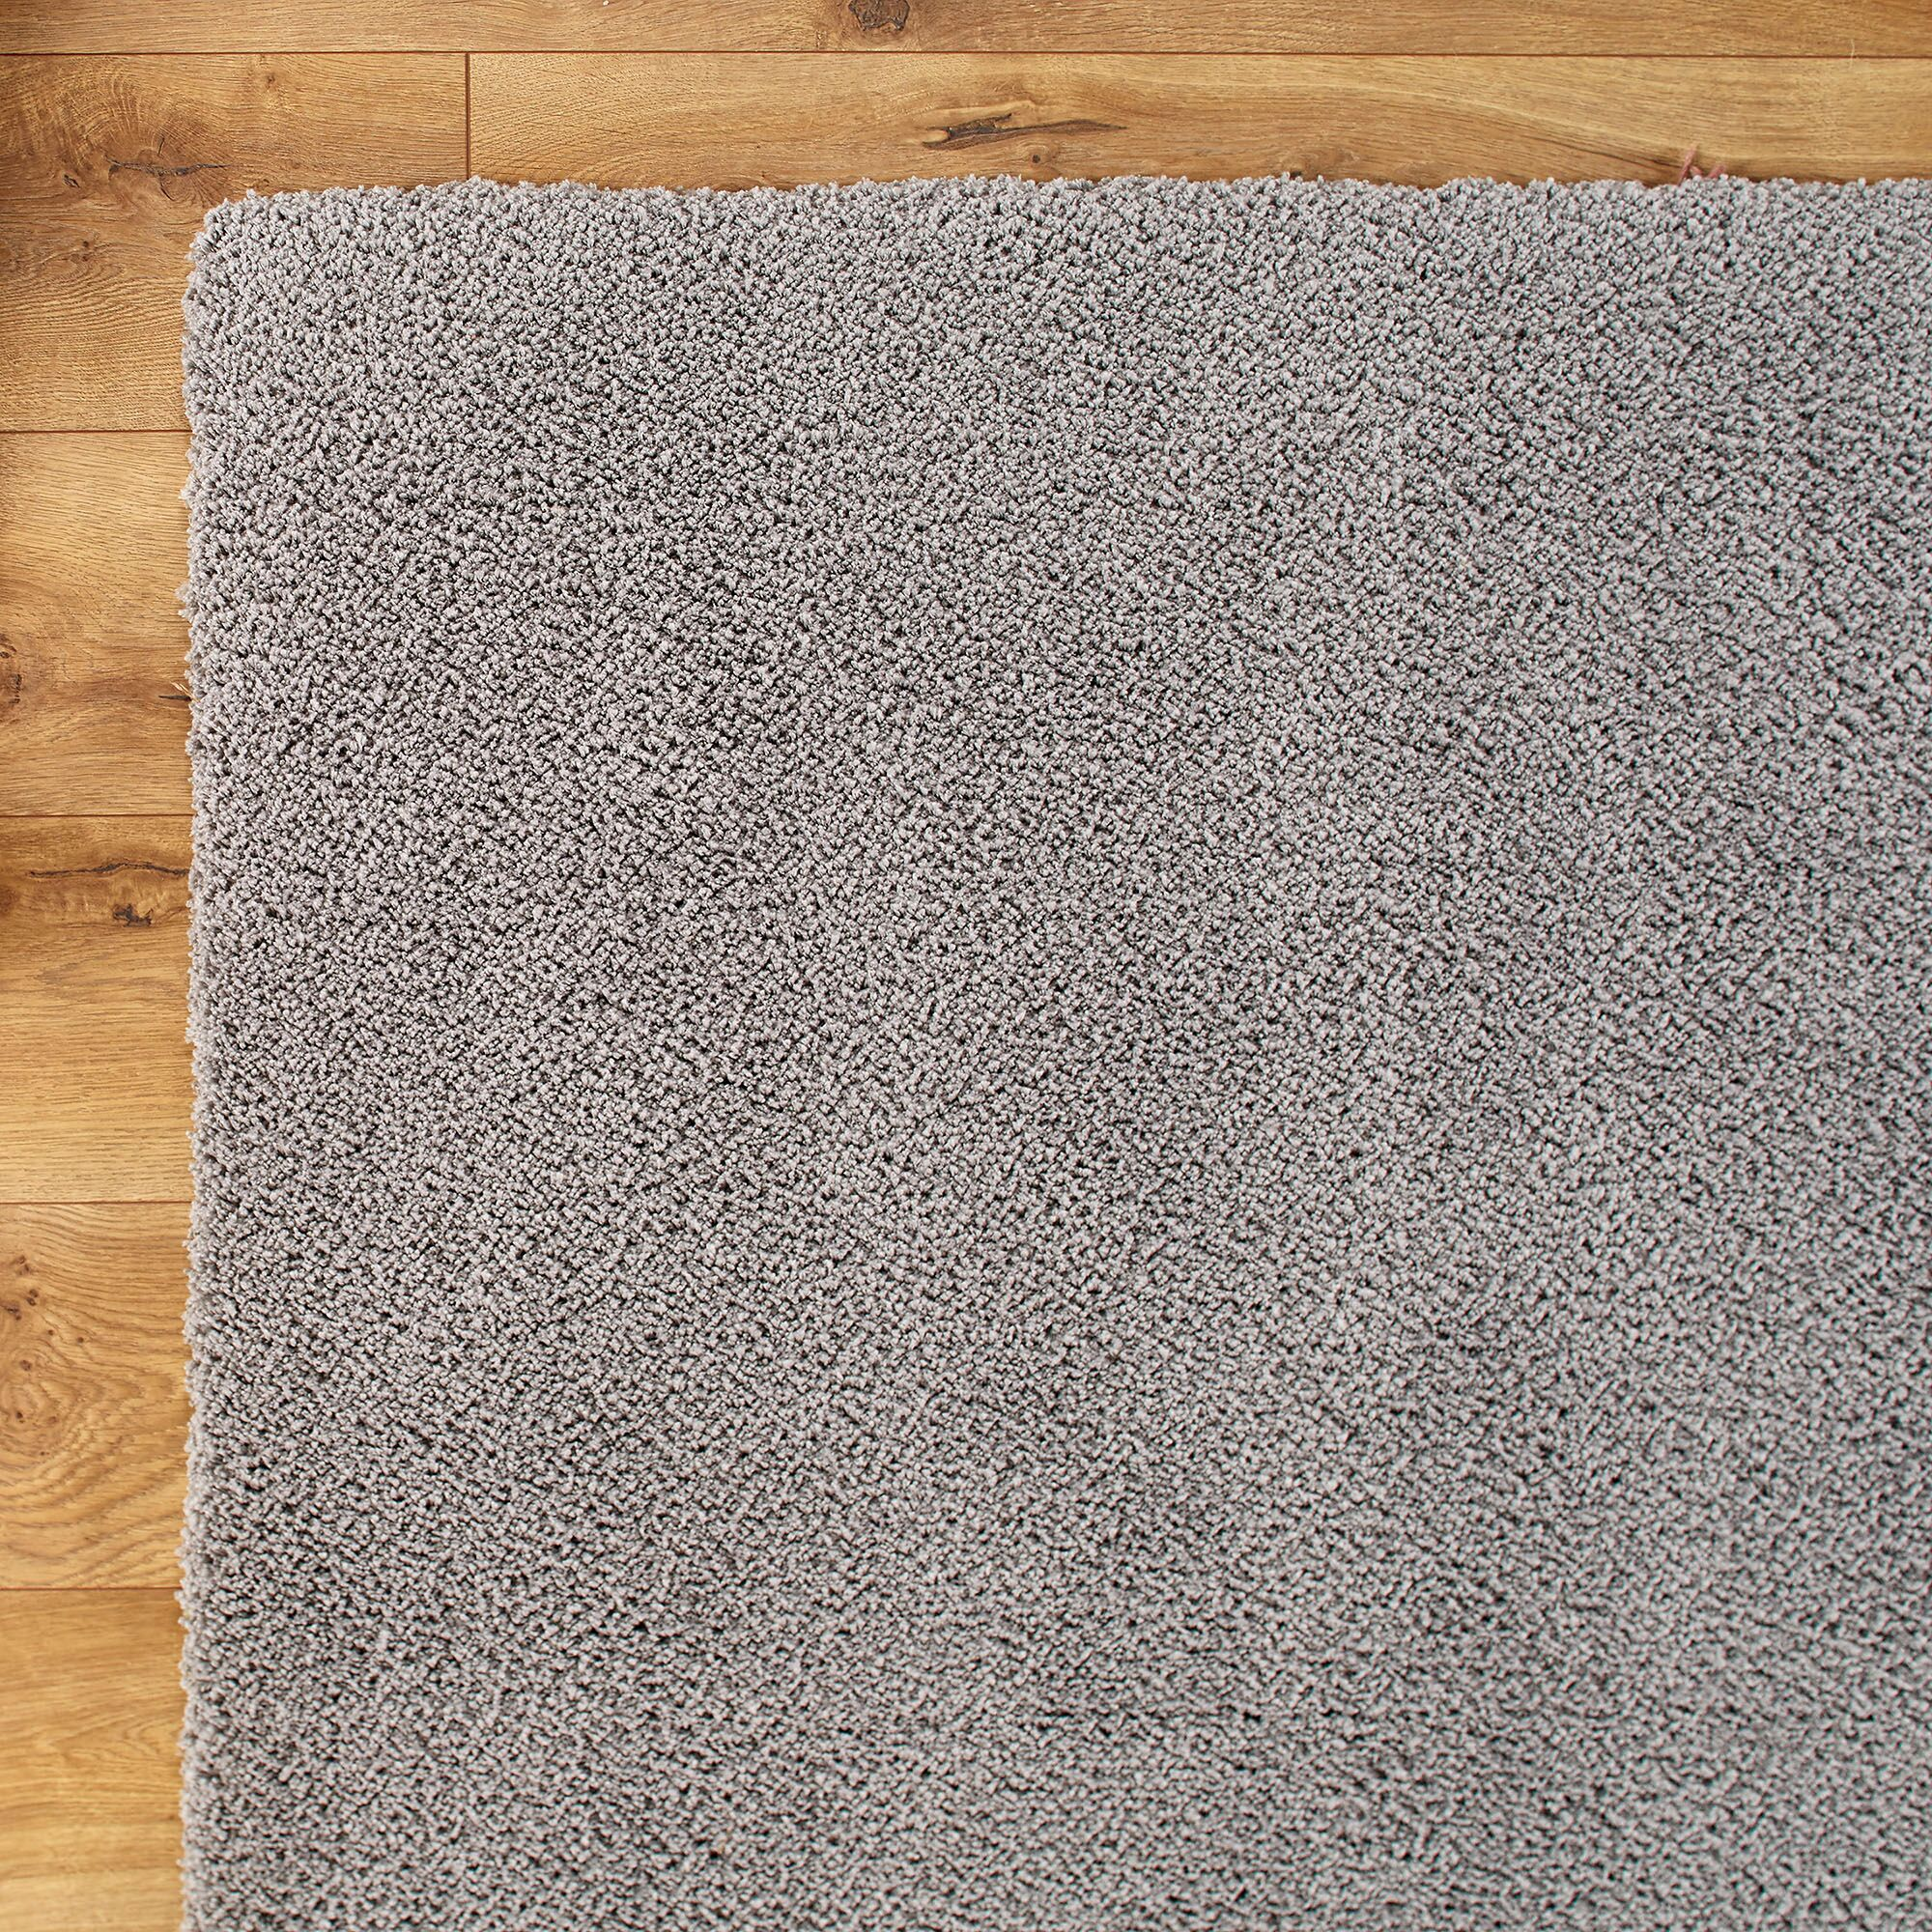 Shaggy Hand-Woven Gray Area Rug Rug Size: Round 6'